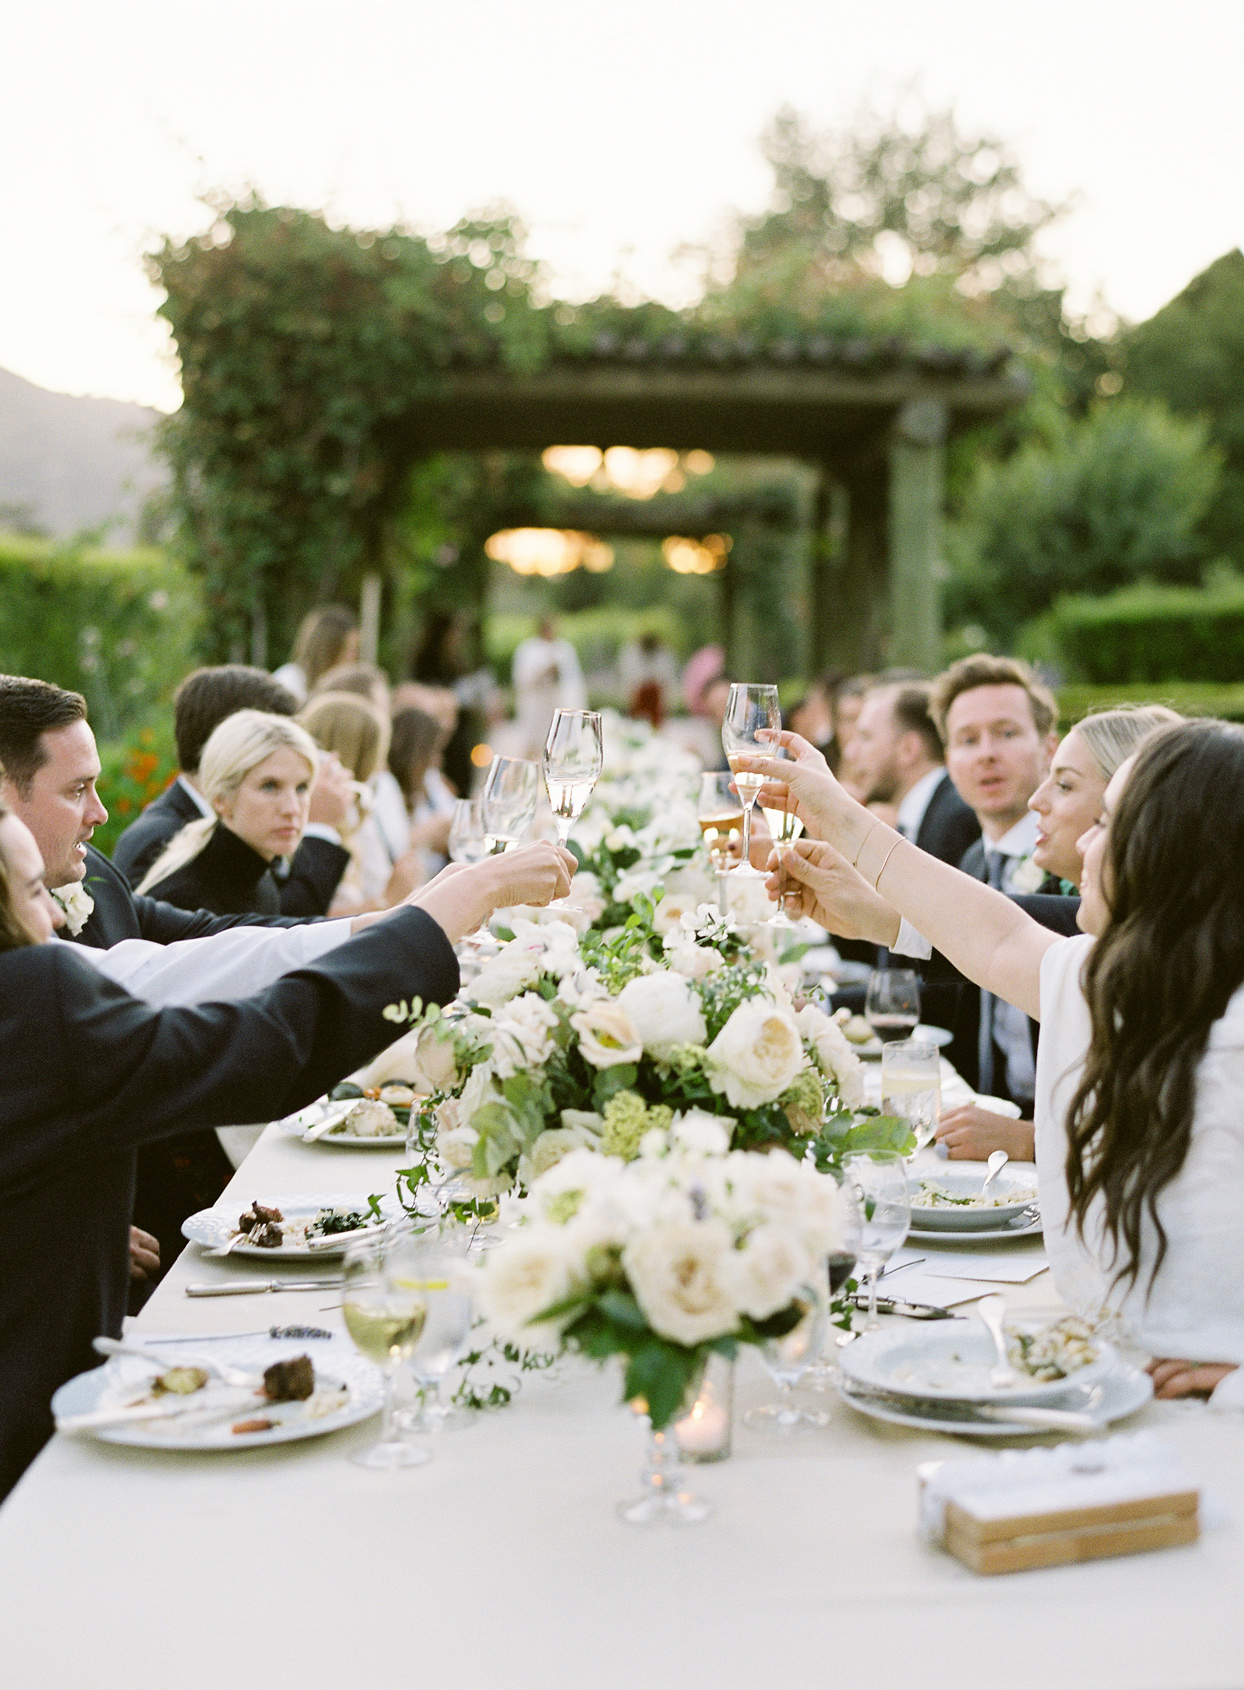 guests share wedding toast at reception table